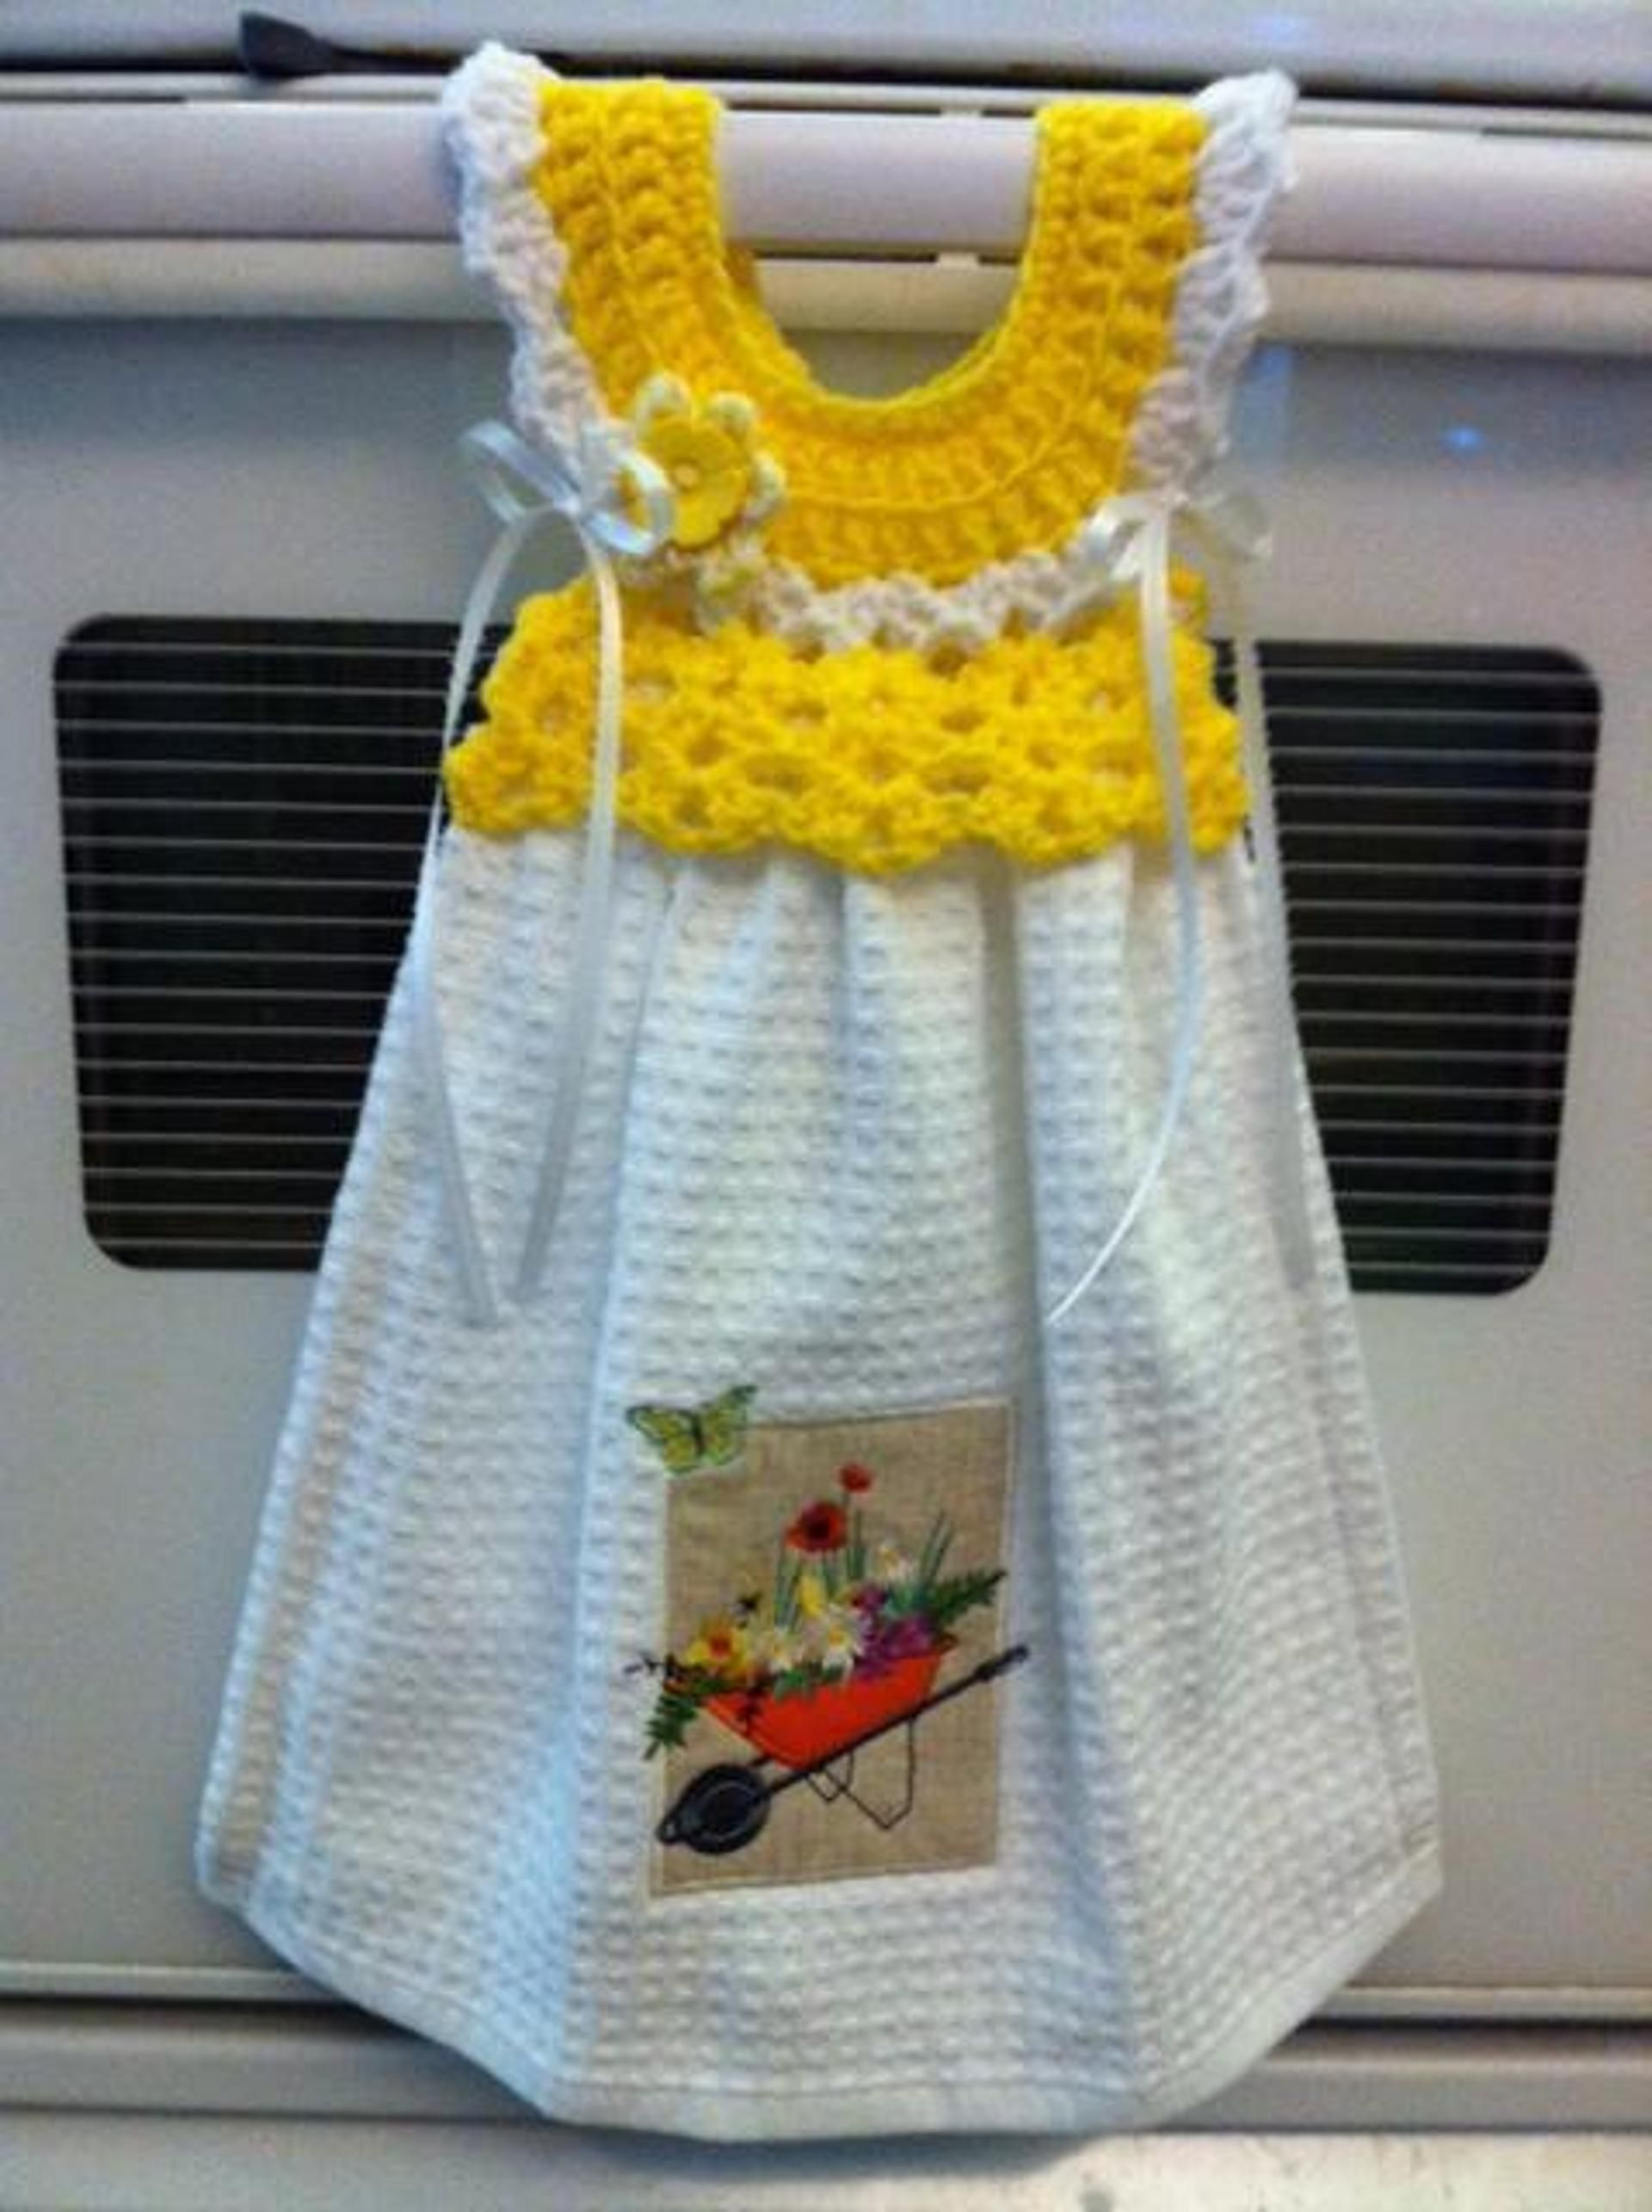 Oven Handle Dress Towel Topper | Oven, Towels and Crocheting patterns